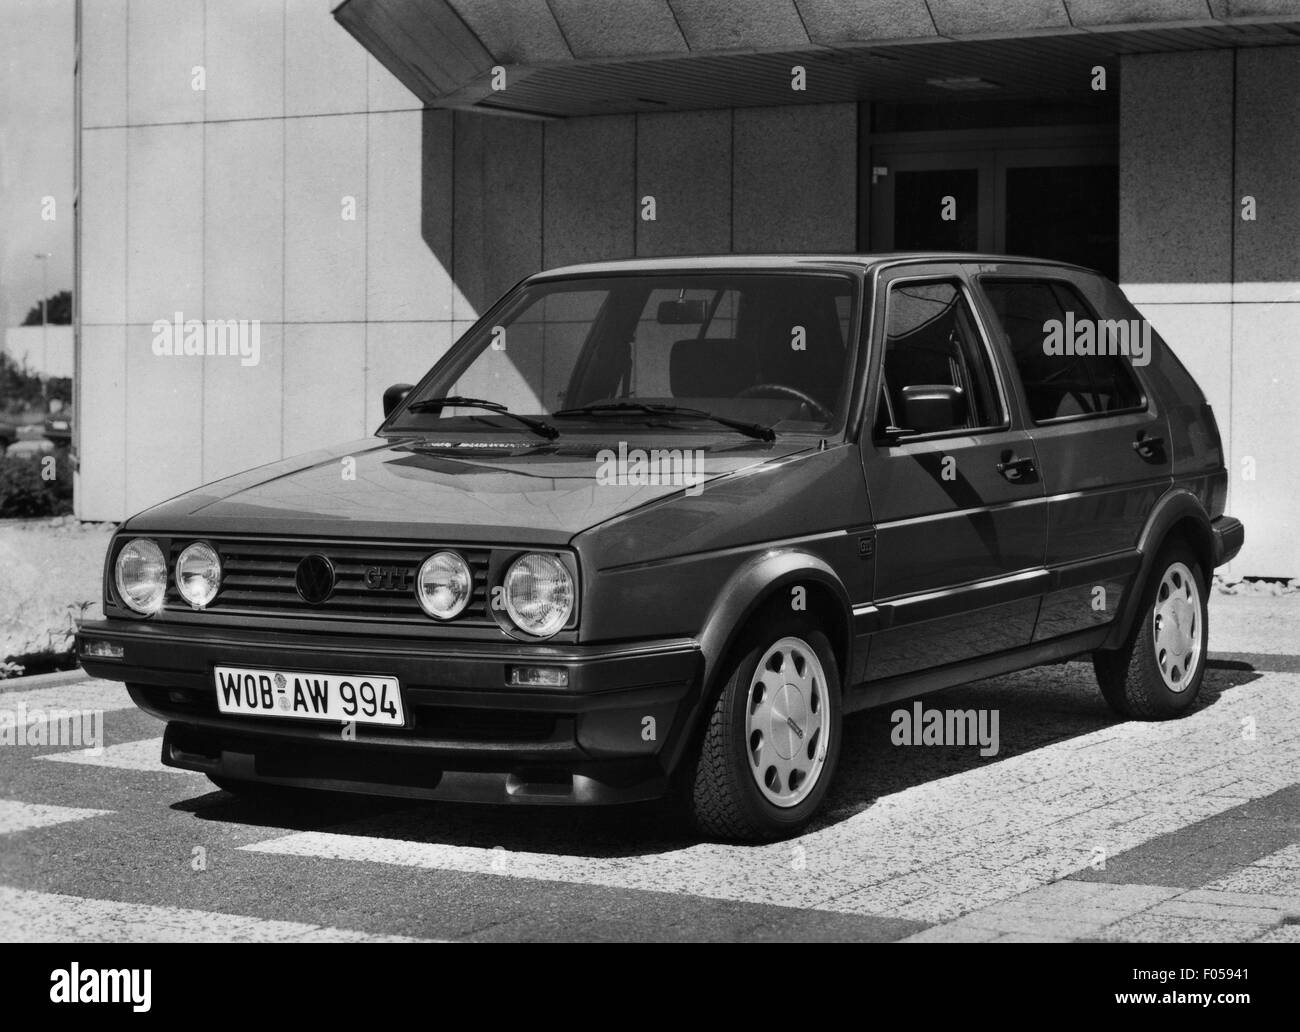 transport / transportation, car, vehicle variants, Volkswagen, VW Golf Mk2 GTI, 1980s, Additional-Rights-Clearences Stock Photo